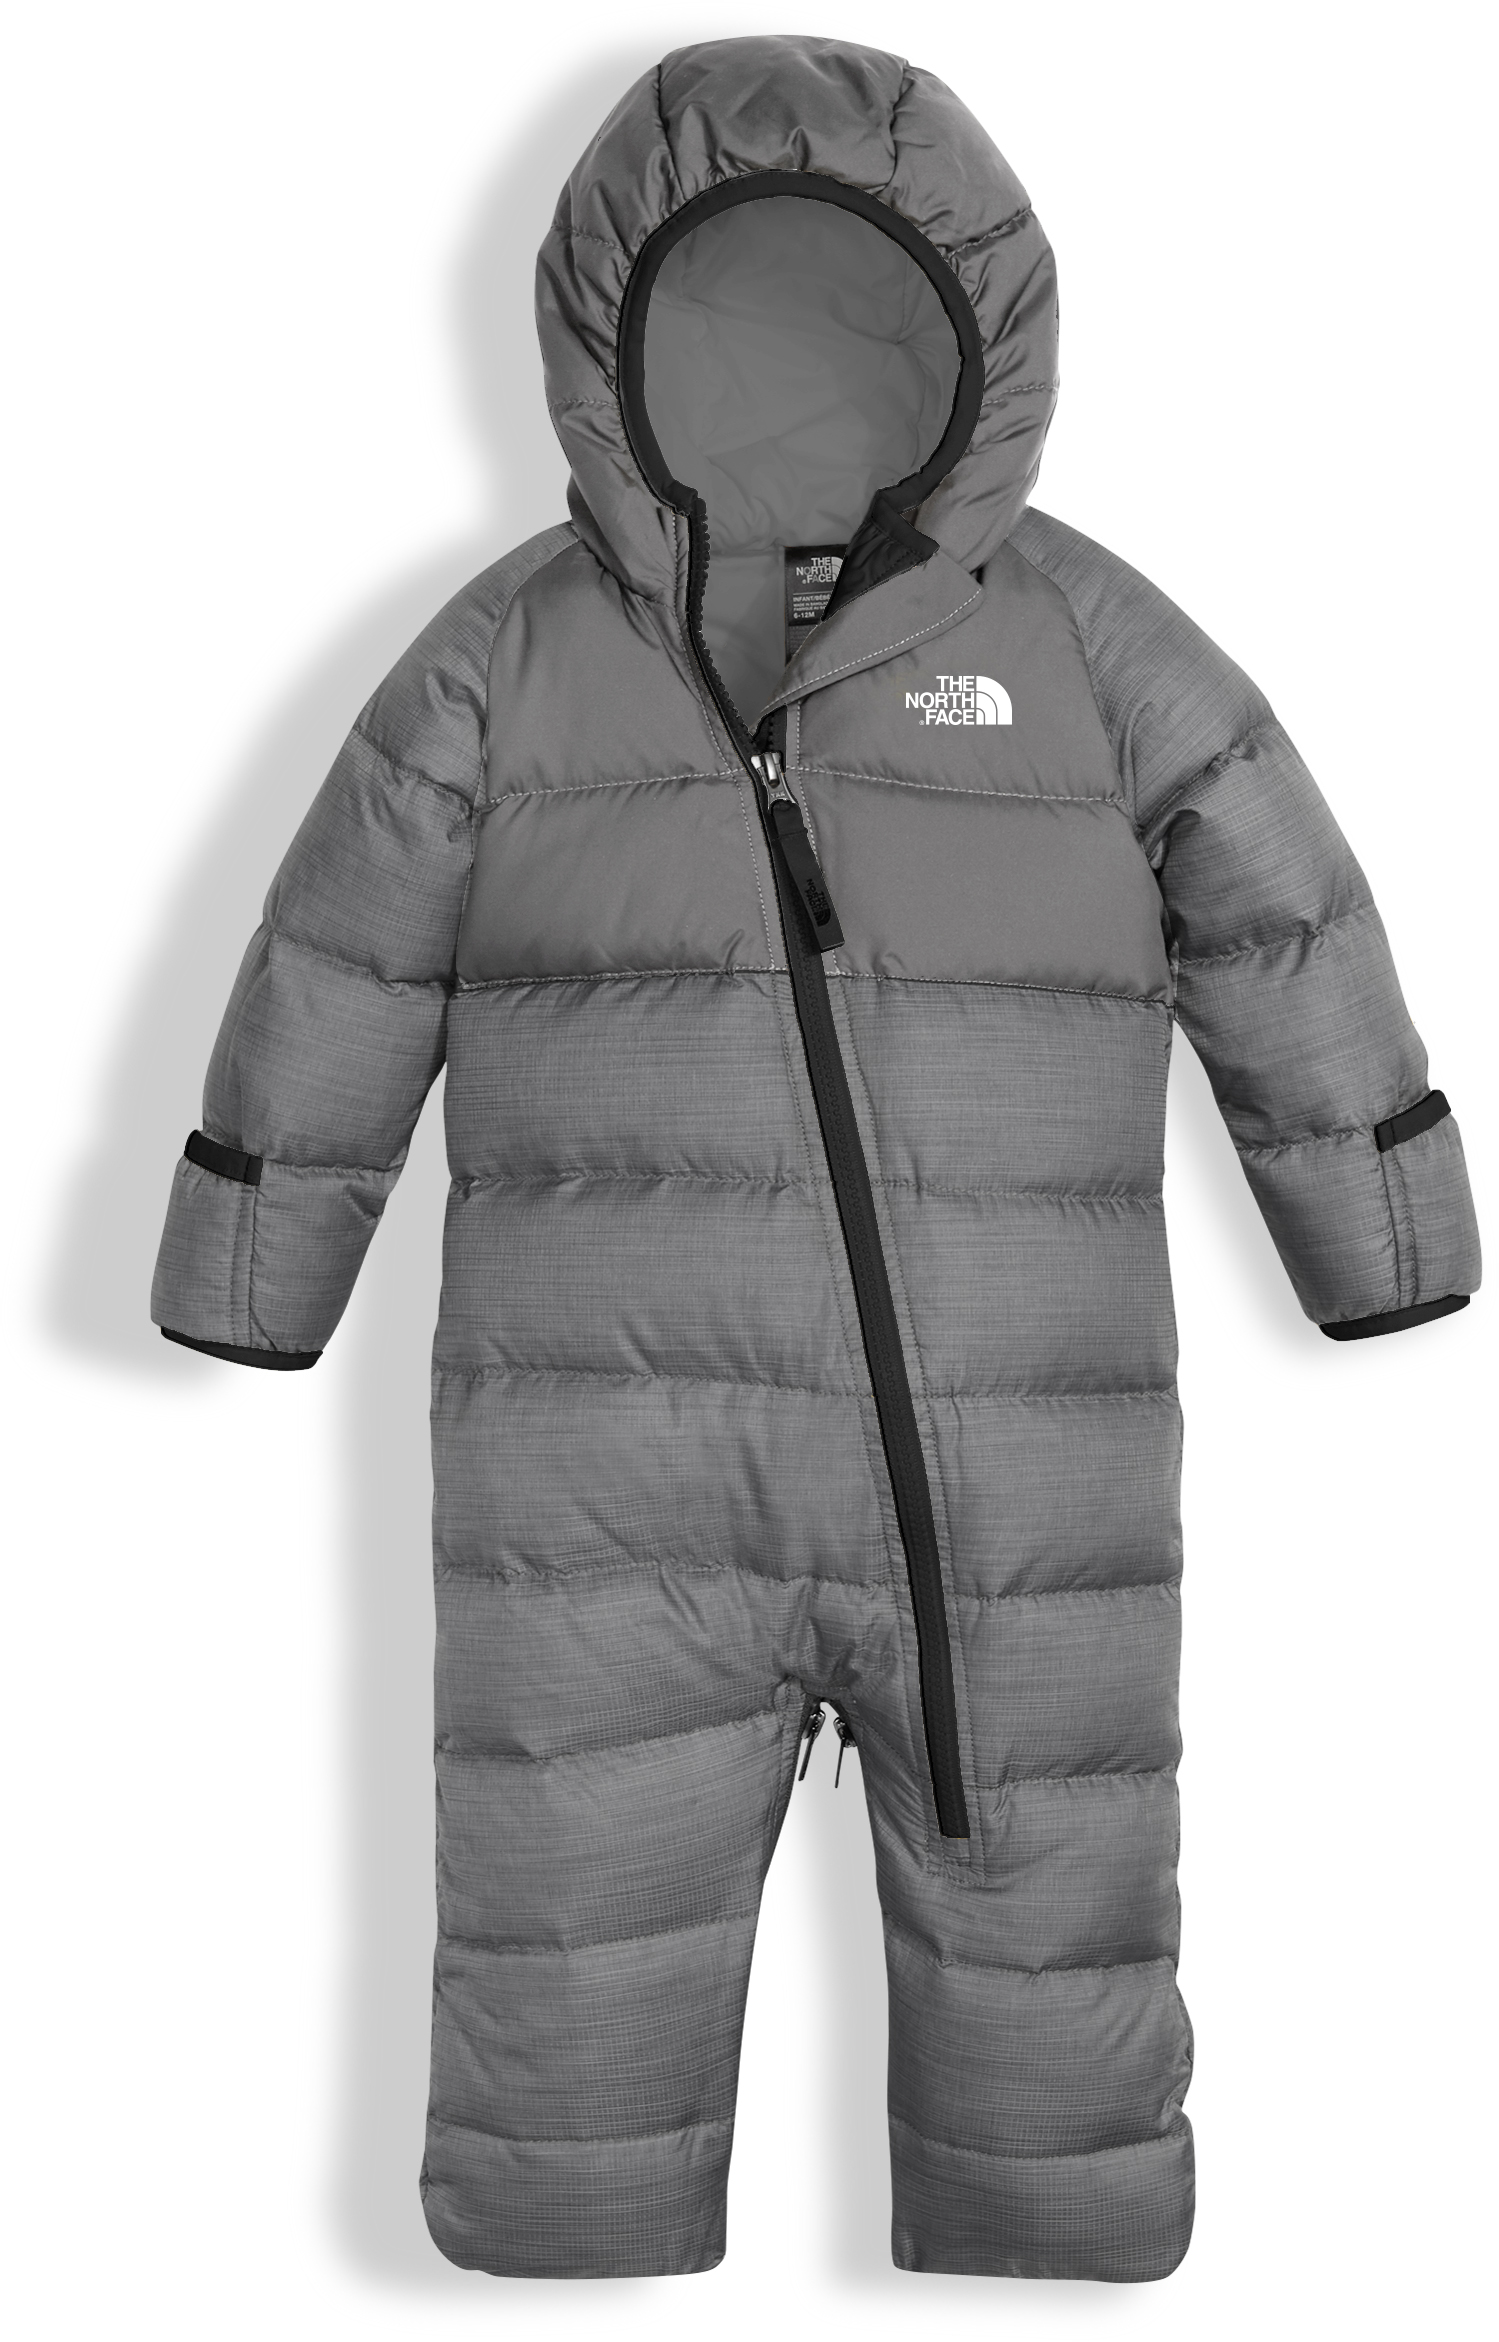 5c07499a1927 The North Face Lil Snuggler Down Bunting - Infants